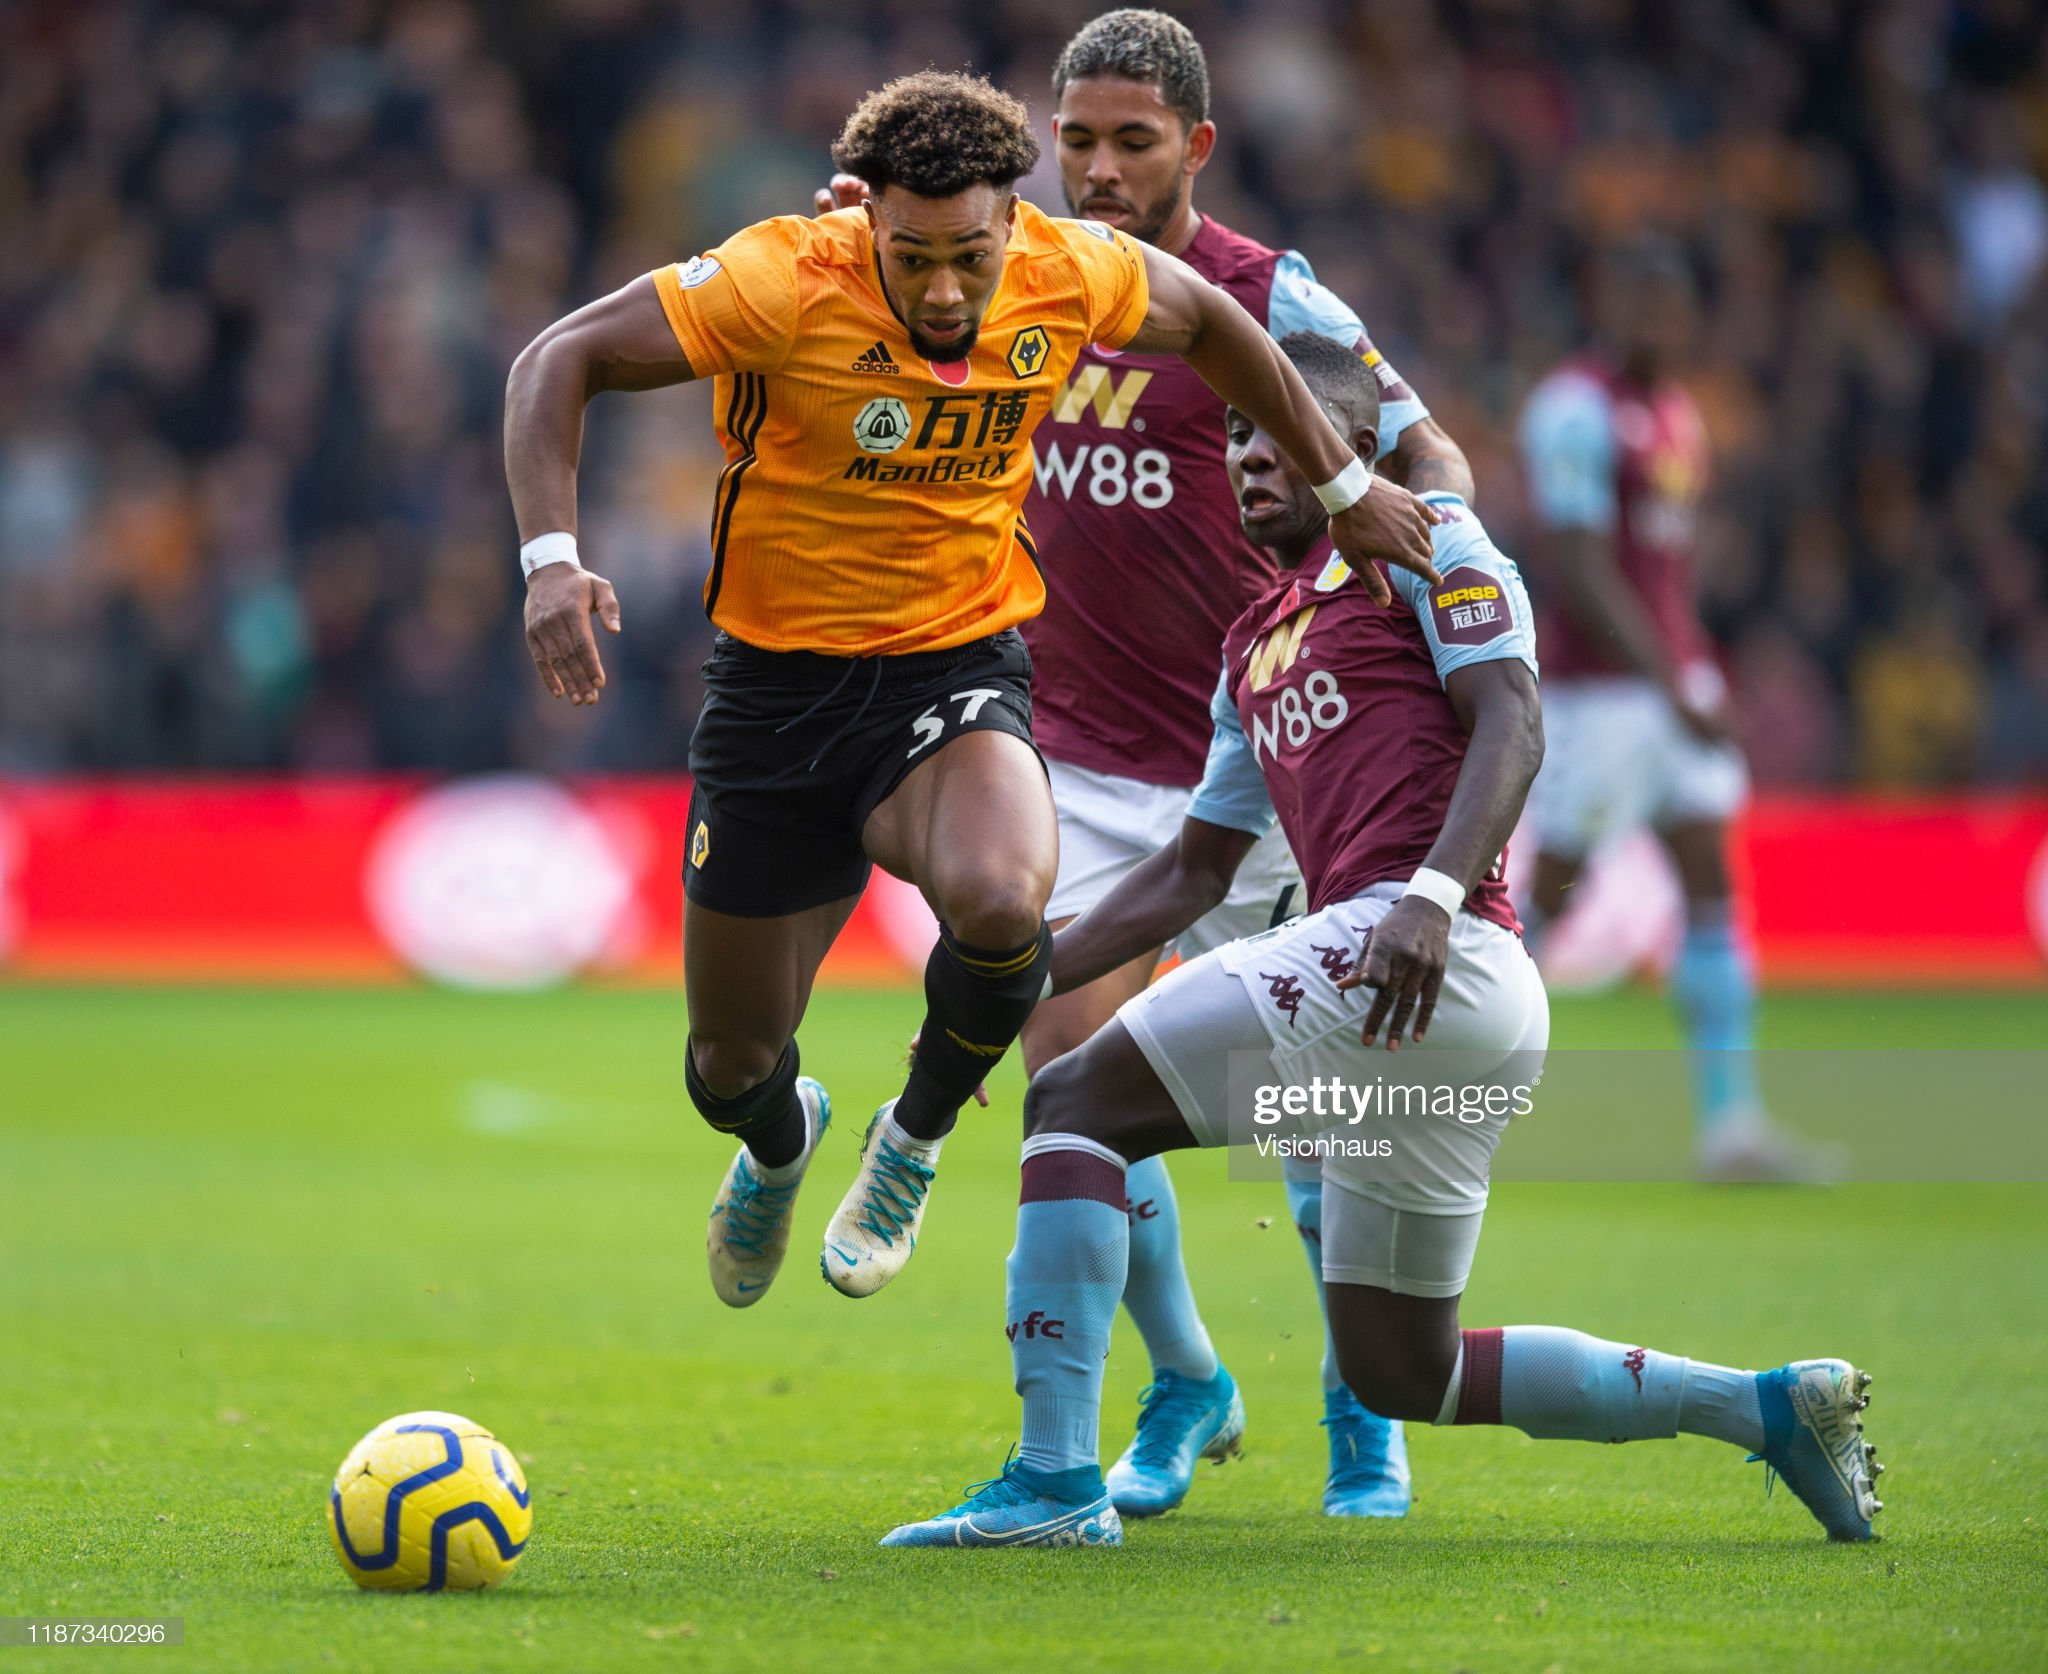 Aston Villa vs Wolves Preview, prediction and odds